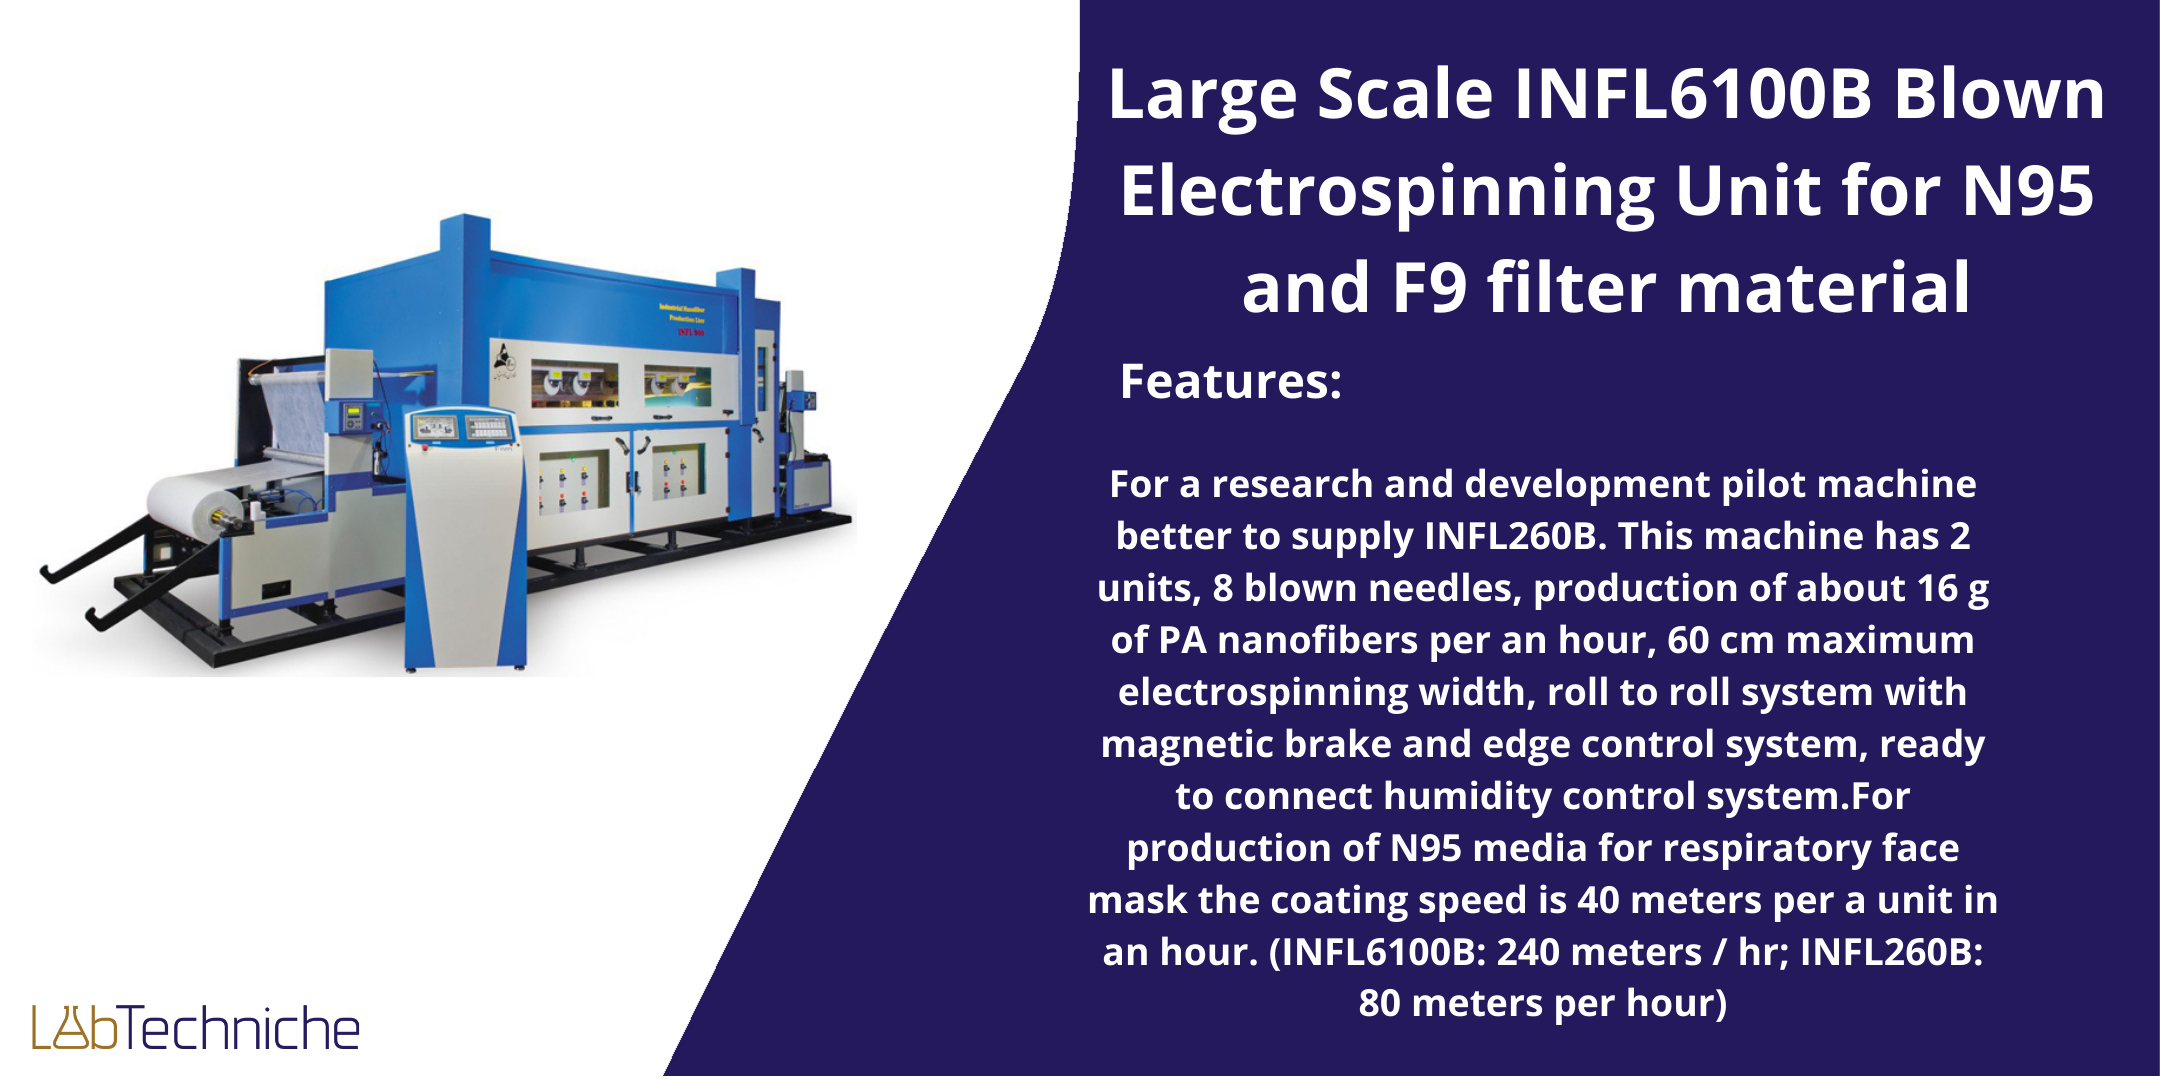 Electrospinning-Unit-for-N95